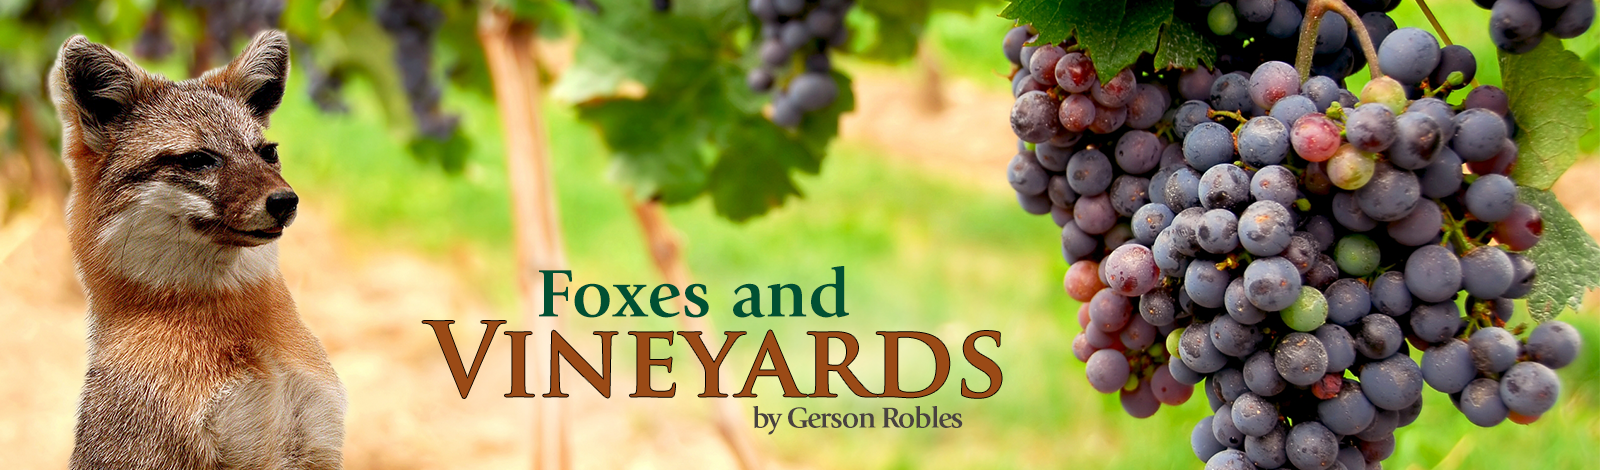 Foxes and Vineyards